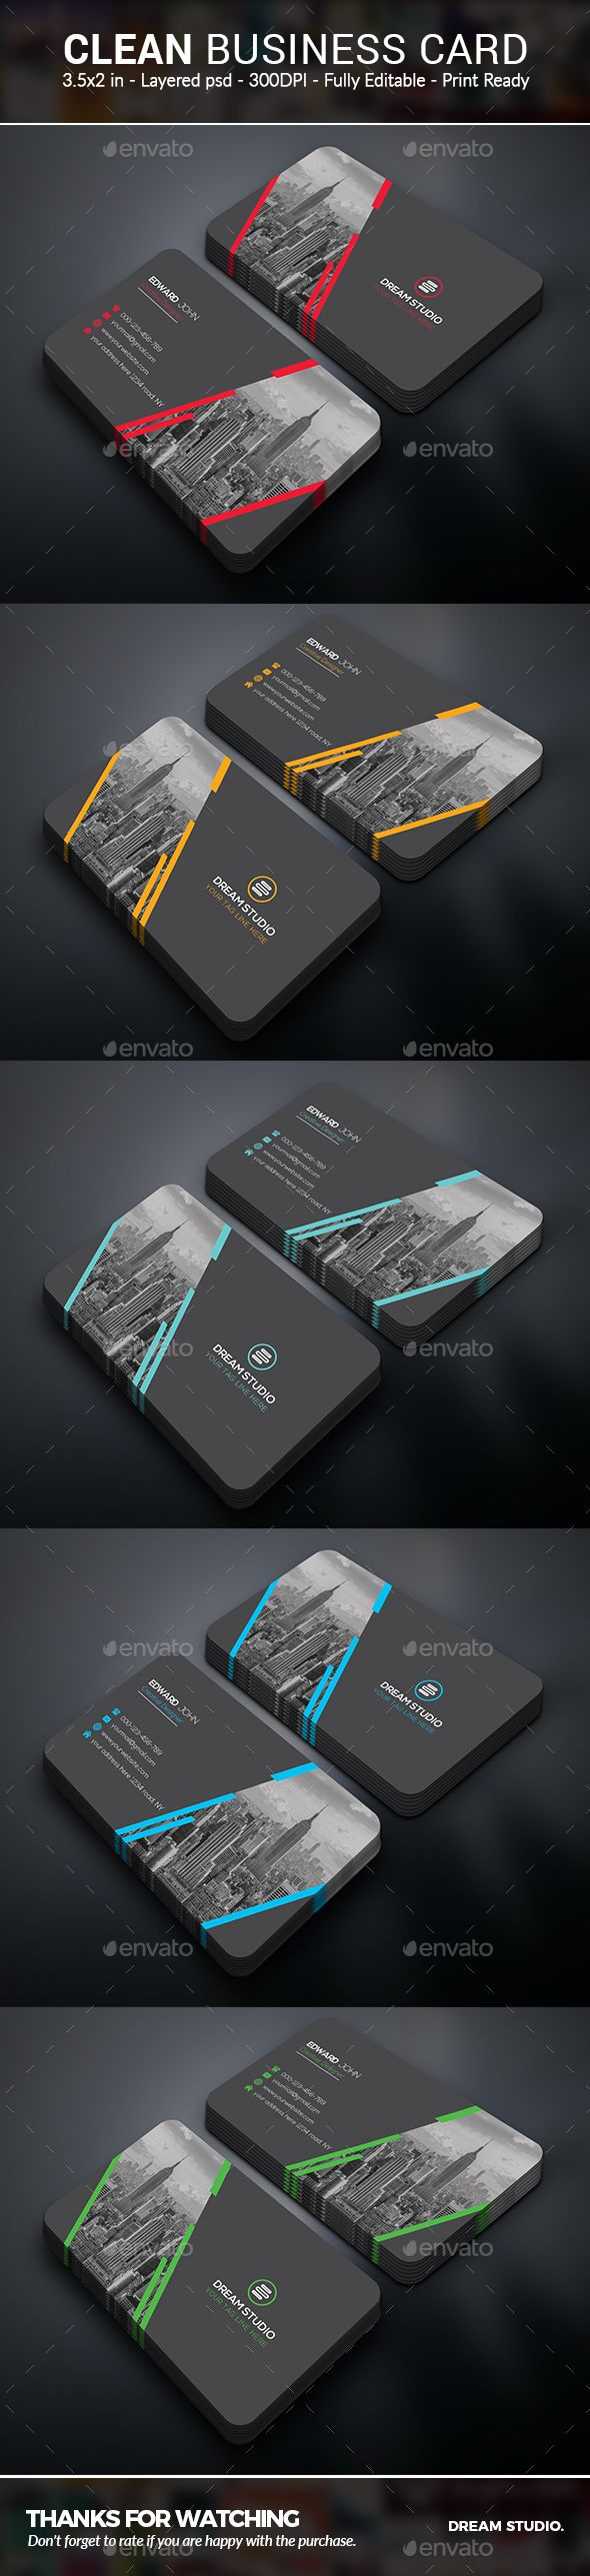 Business Cards - Business Cards Print Templates Download here : https://graphicriver.net/item/business-cards/19690782?s_rank=27&ref=Al-fatih